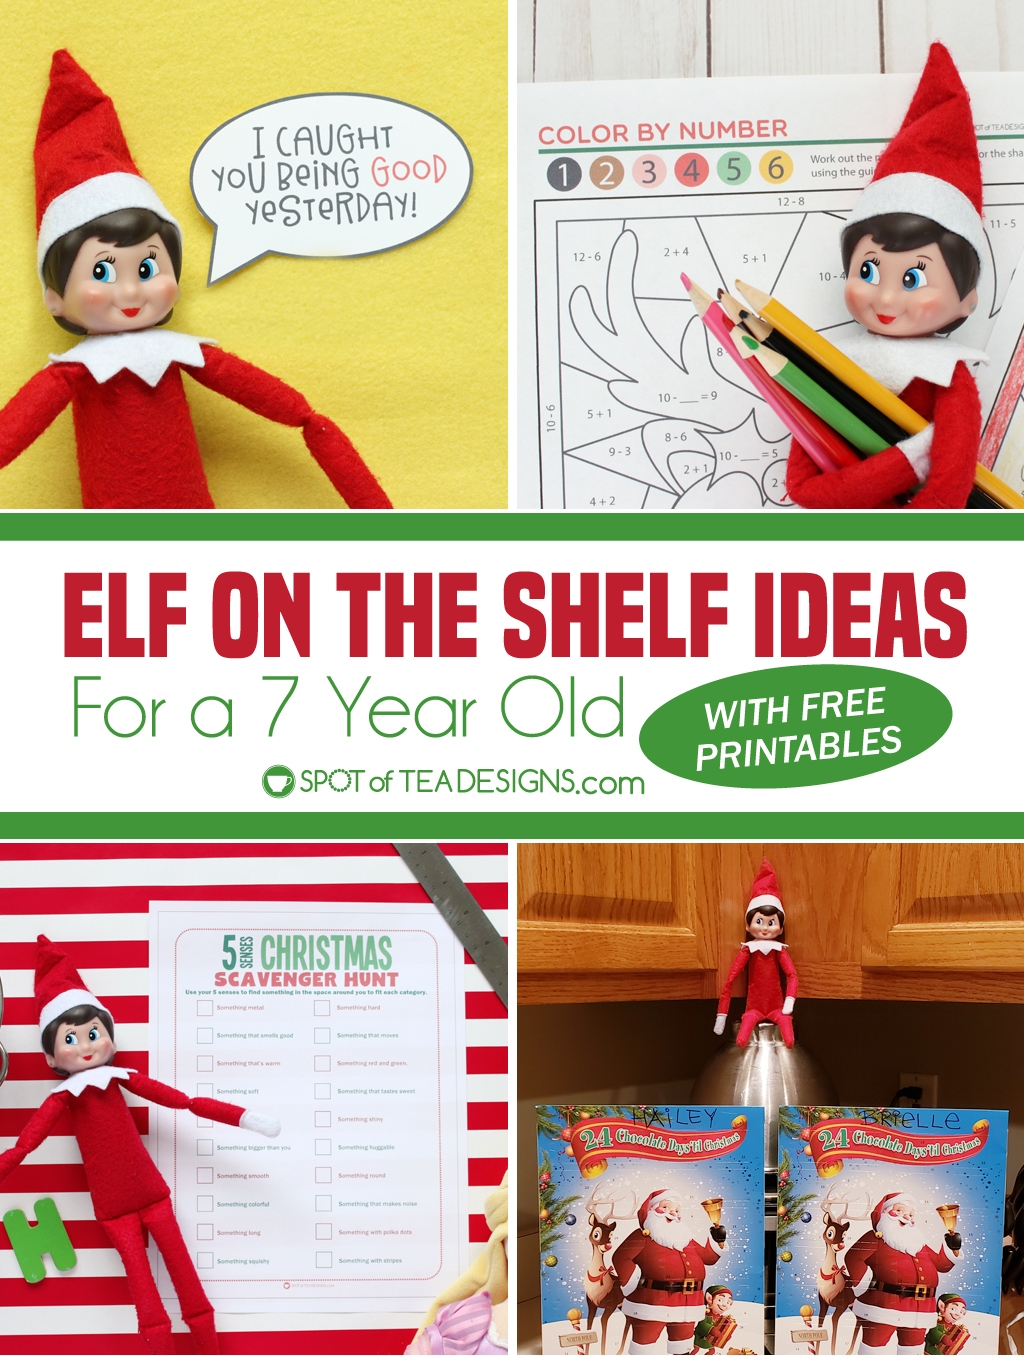 Elf on the shelf ideas for a 7 year old - printable schedule and links to free printable activity sheets | spotofteadesigns.com